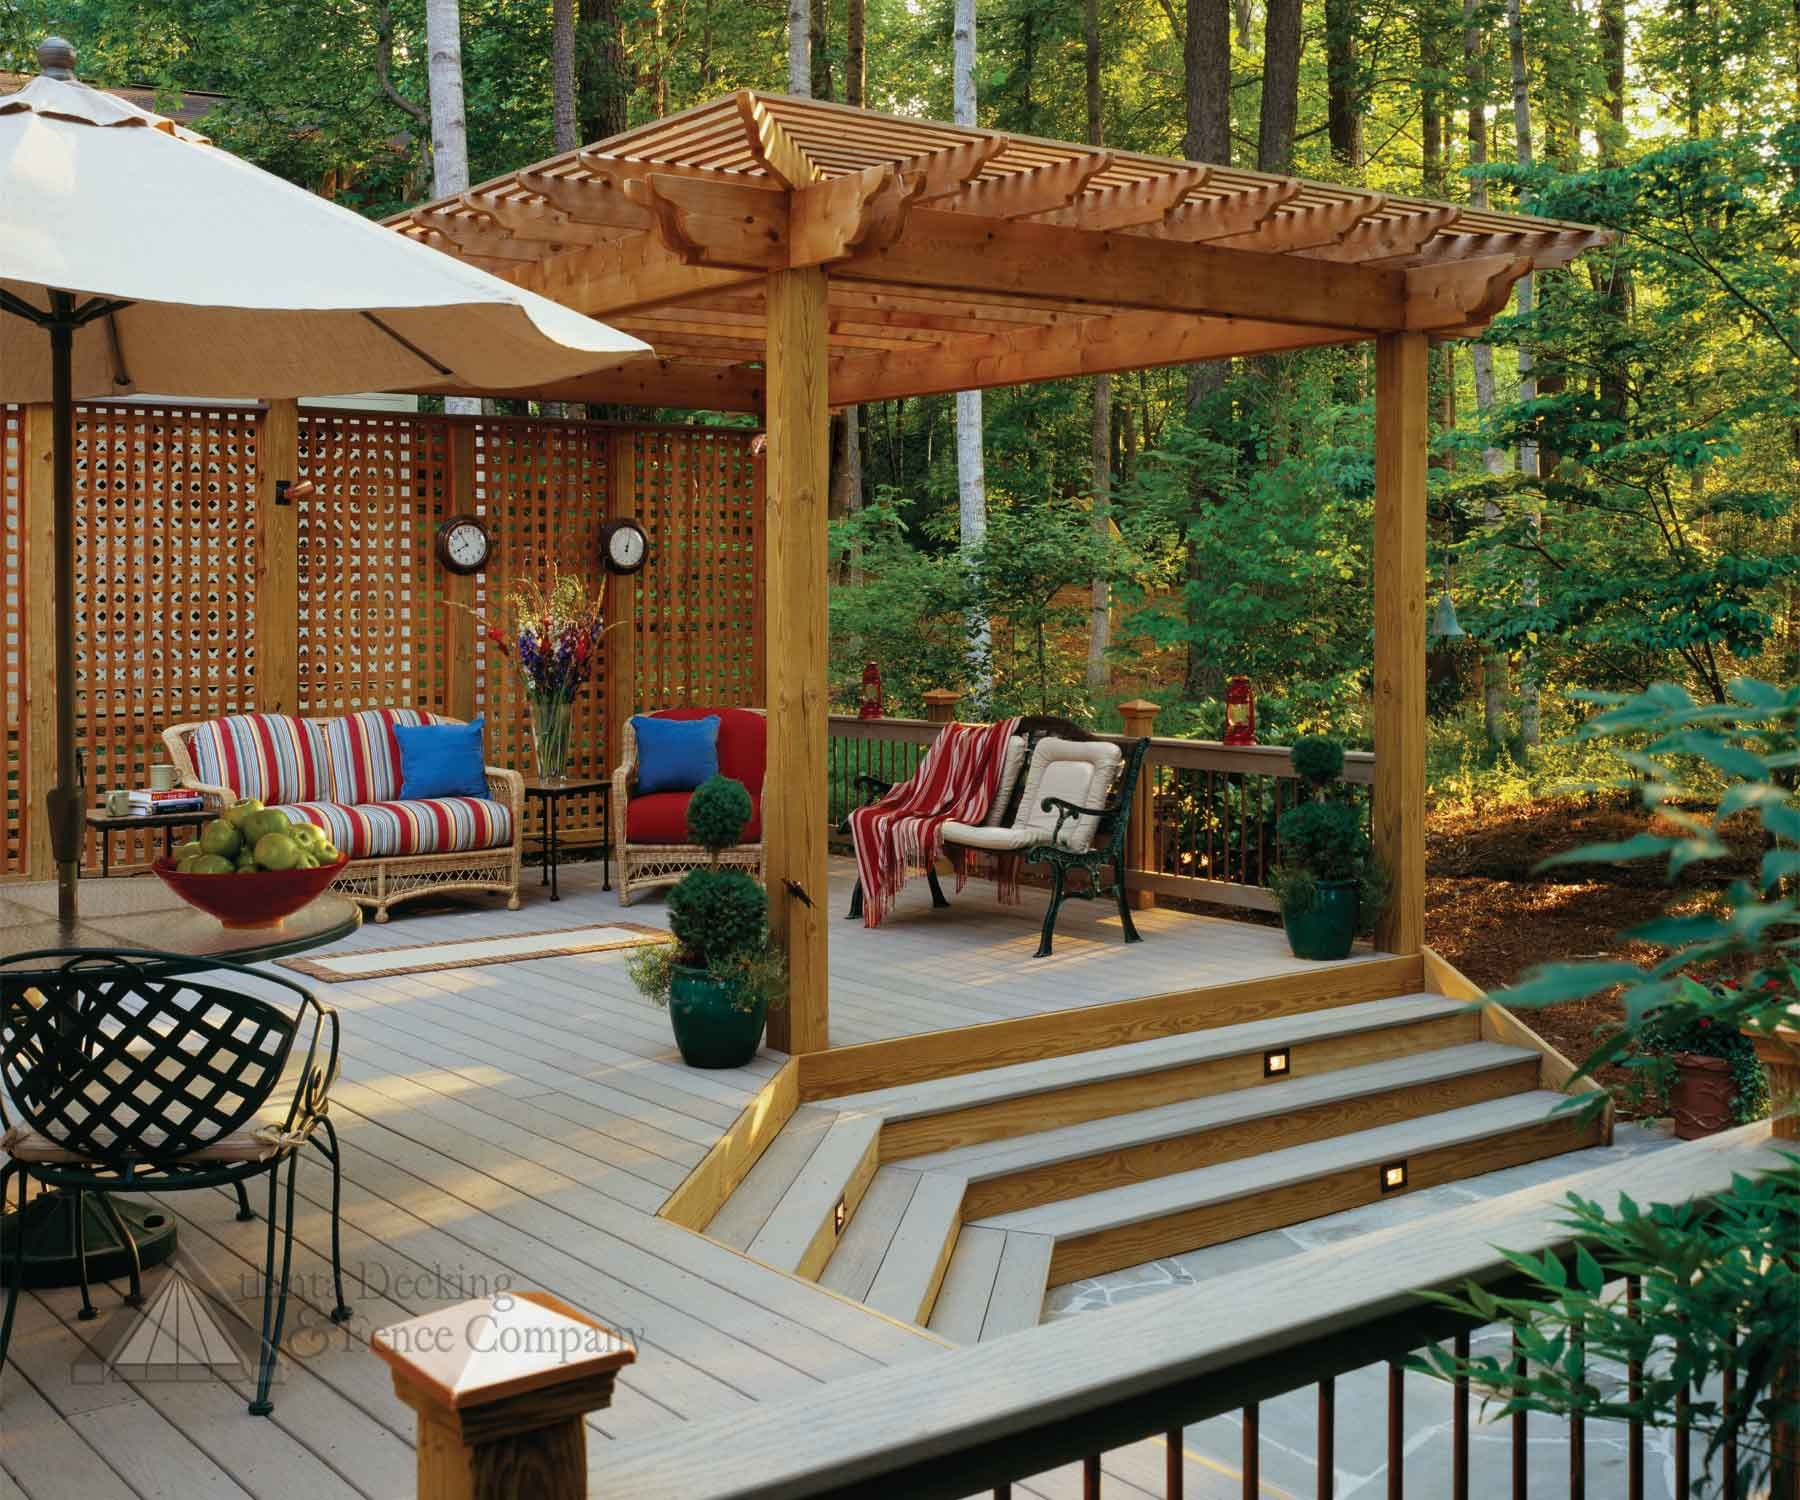 Pictures Of Composite Deck With Arbor And Privacy Screen From